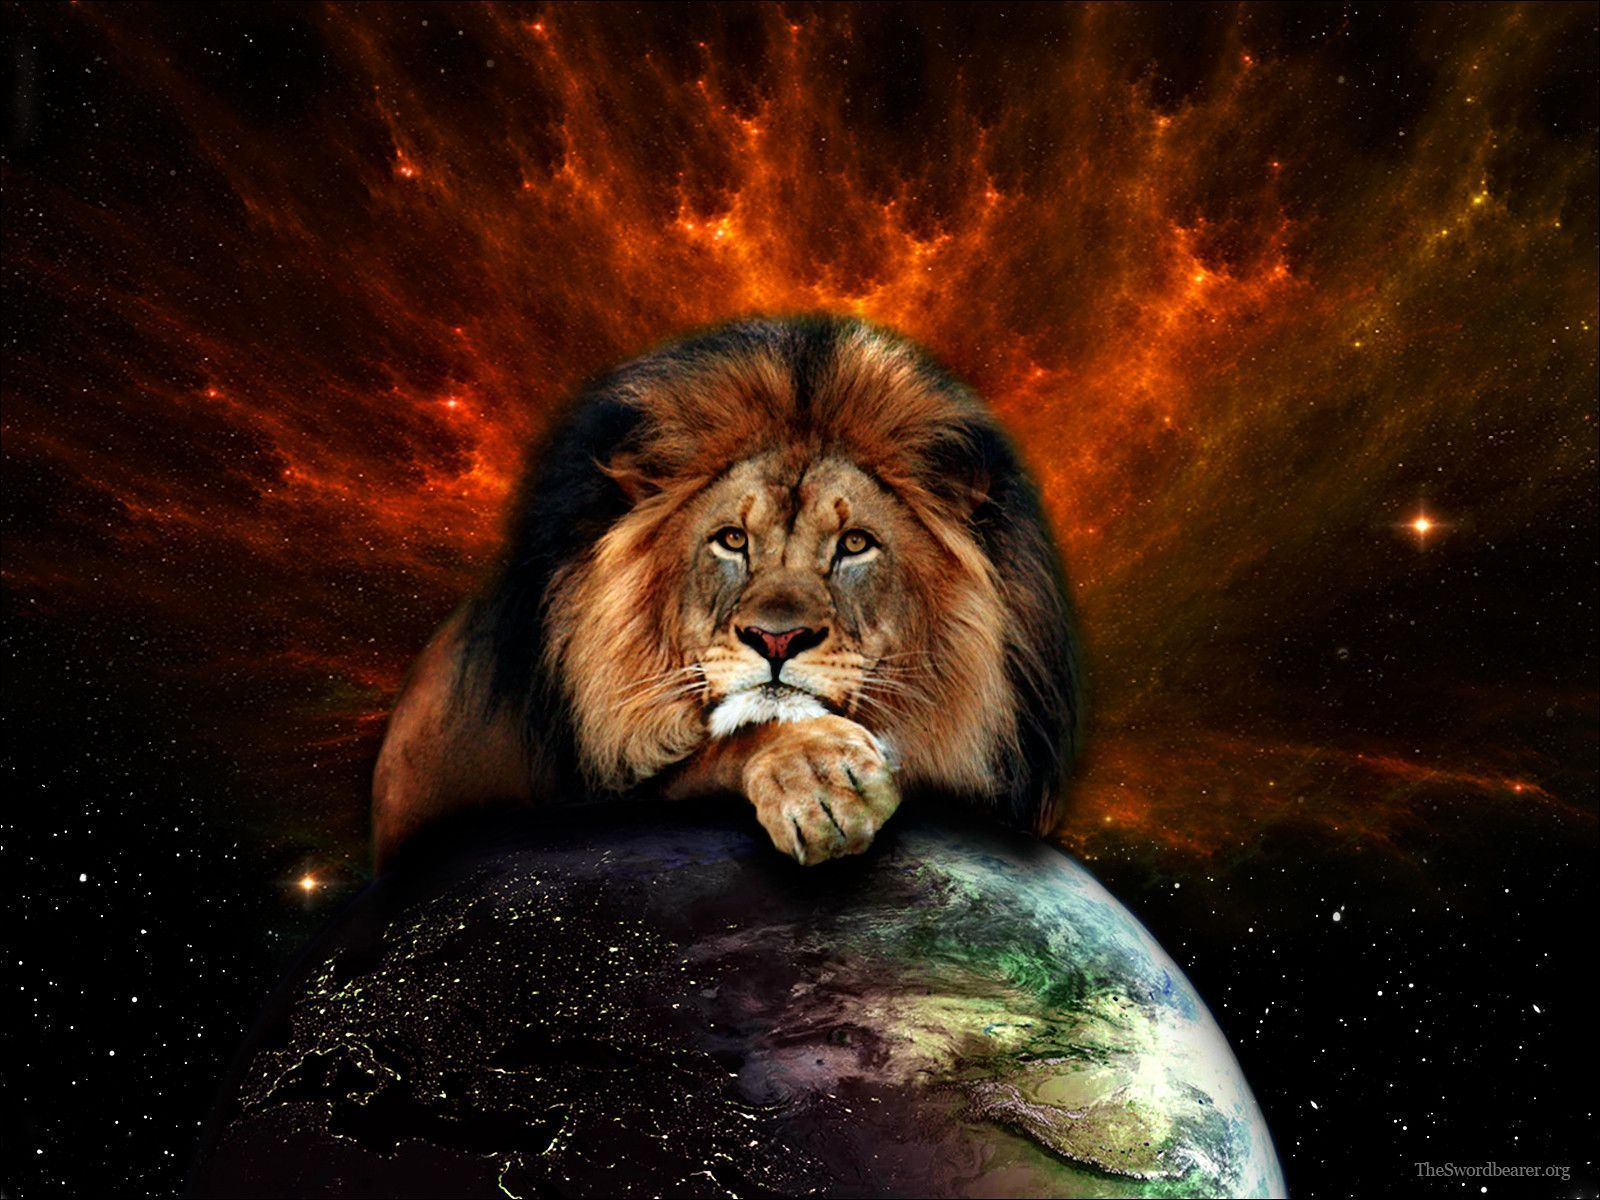 Wallpaper Lion Of The Tribe Of Judah Please Also Visit Www